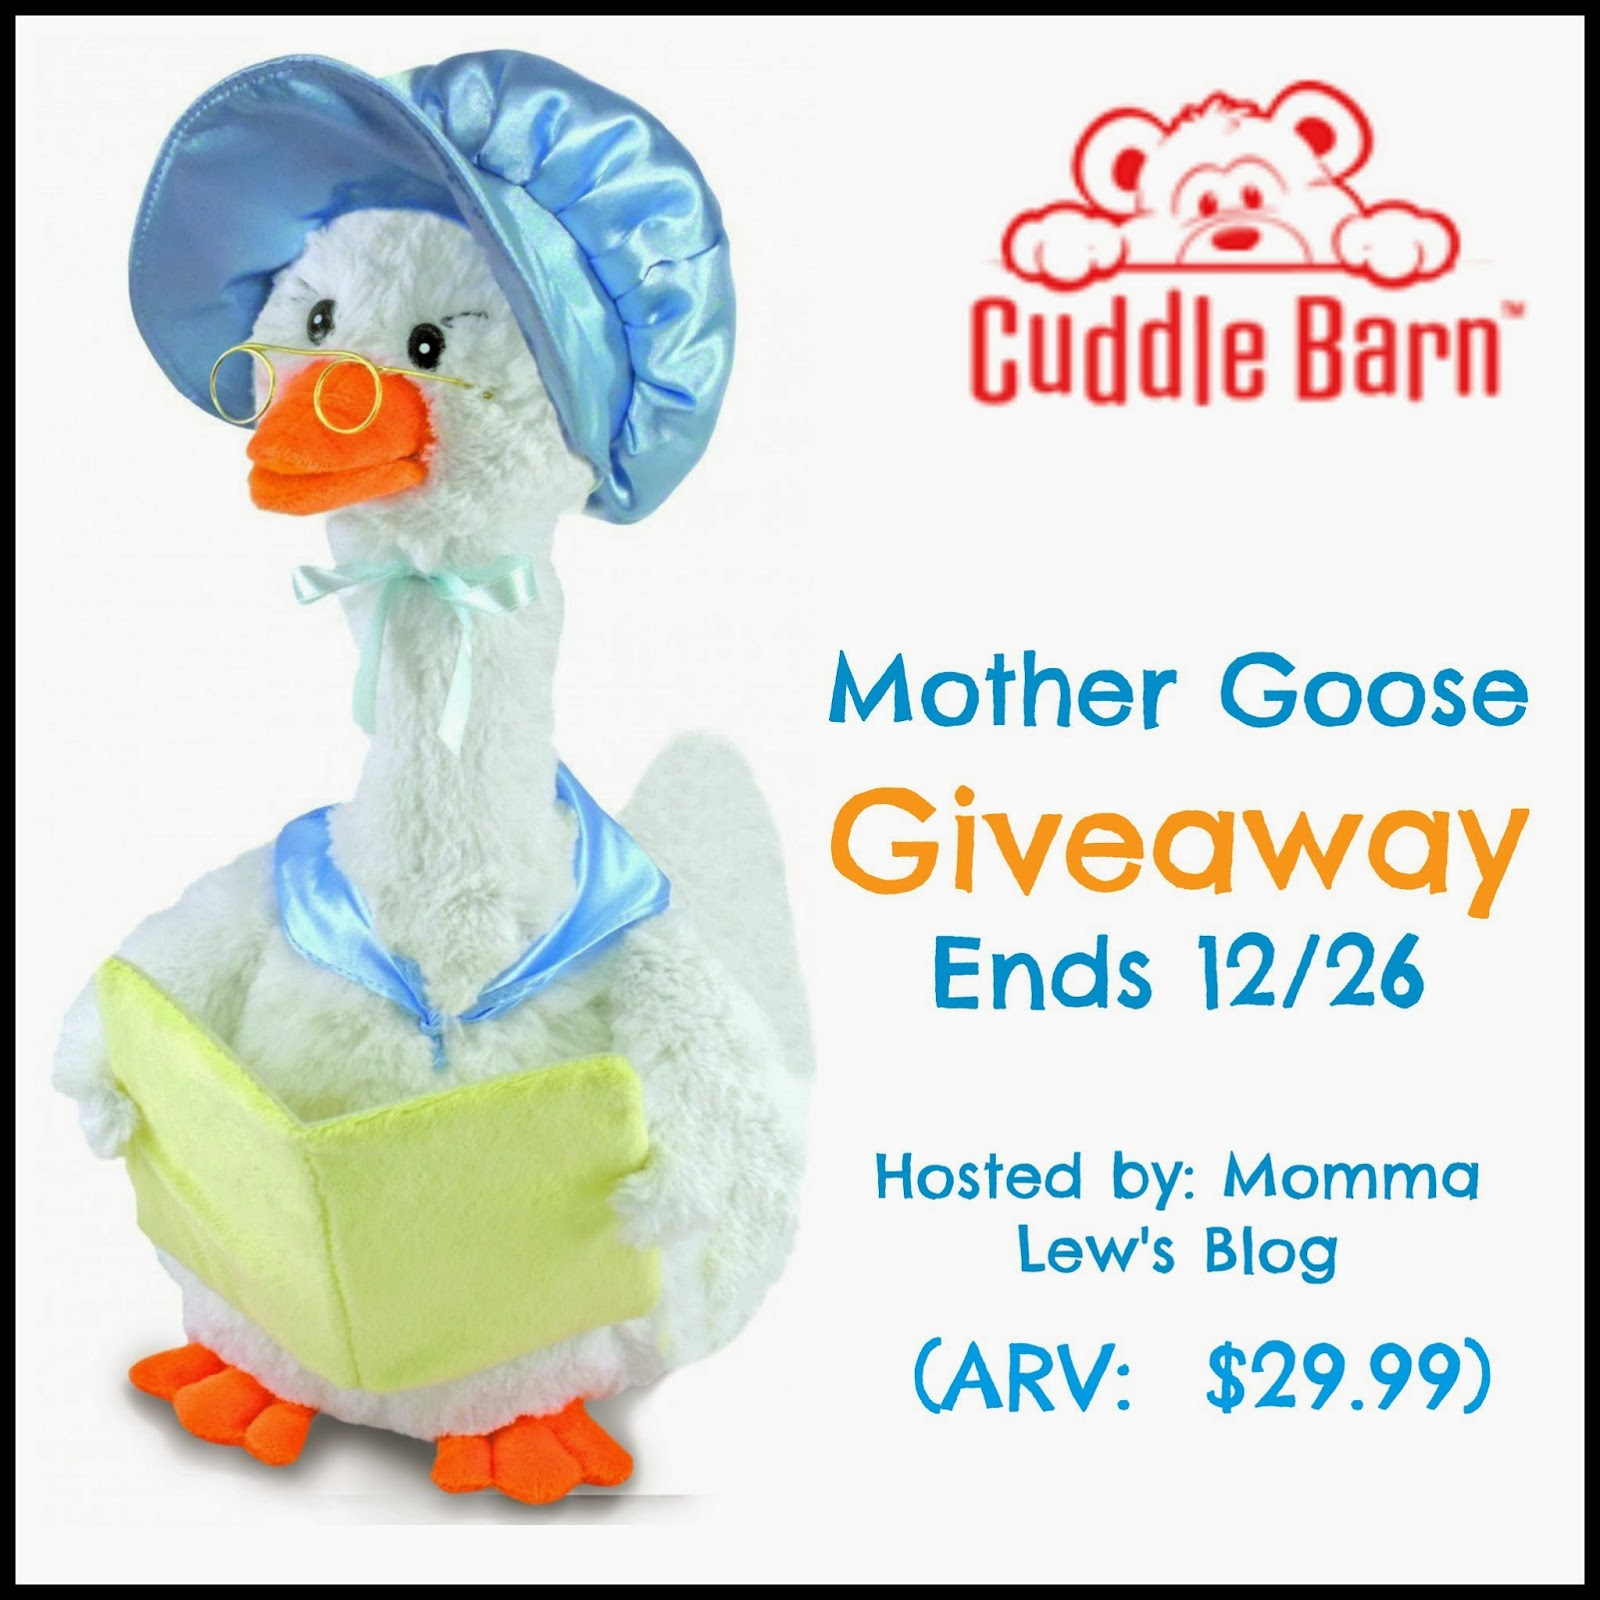 Cuddle Barn Mother Goose Giveaway